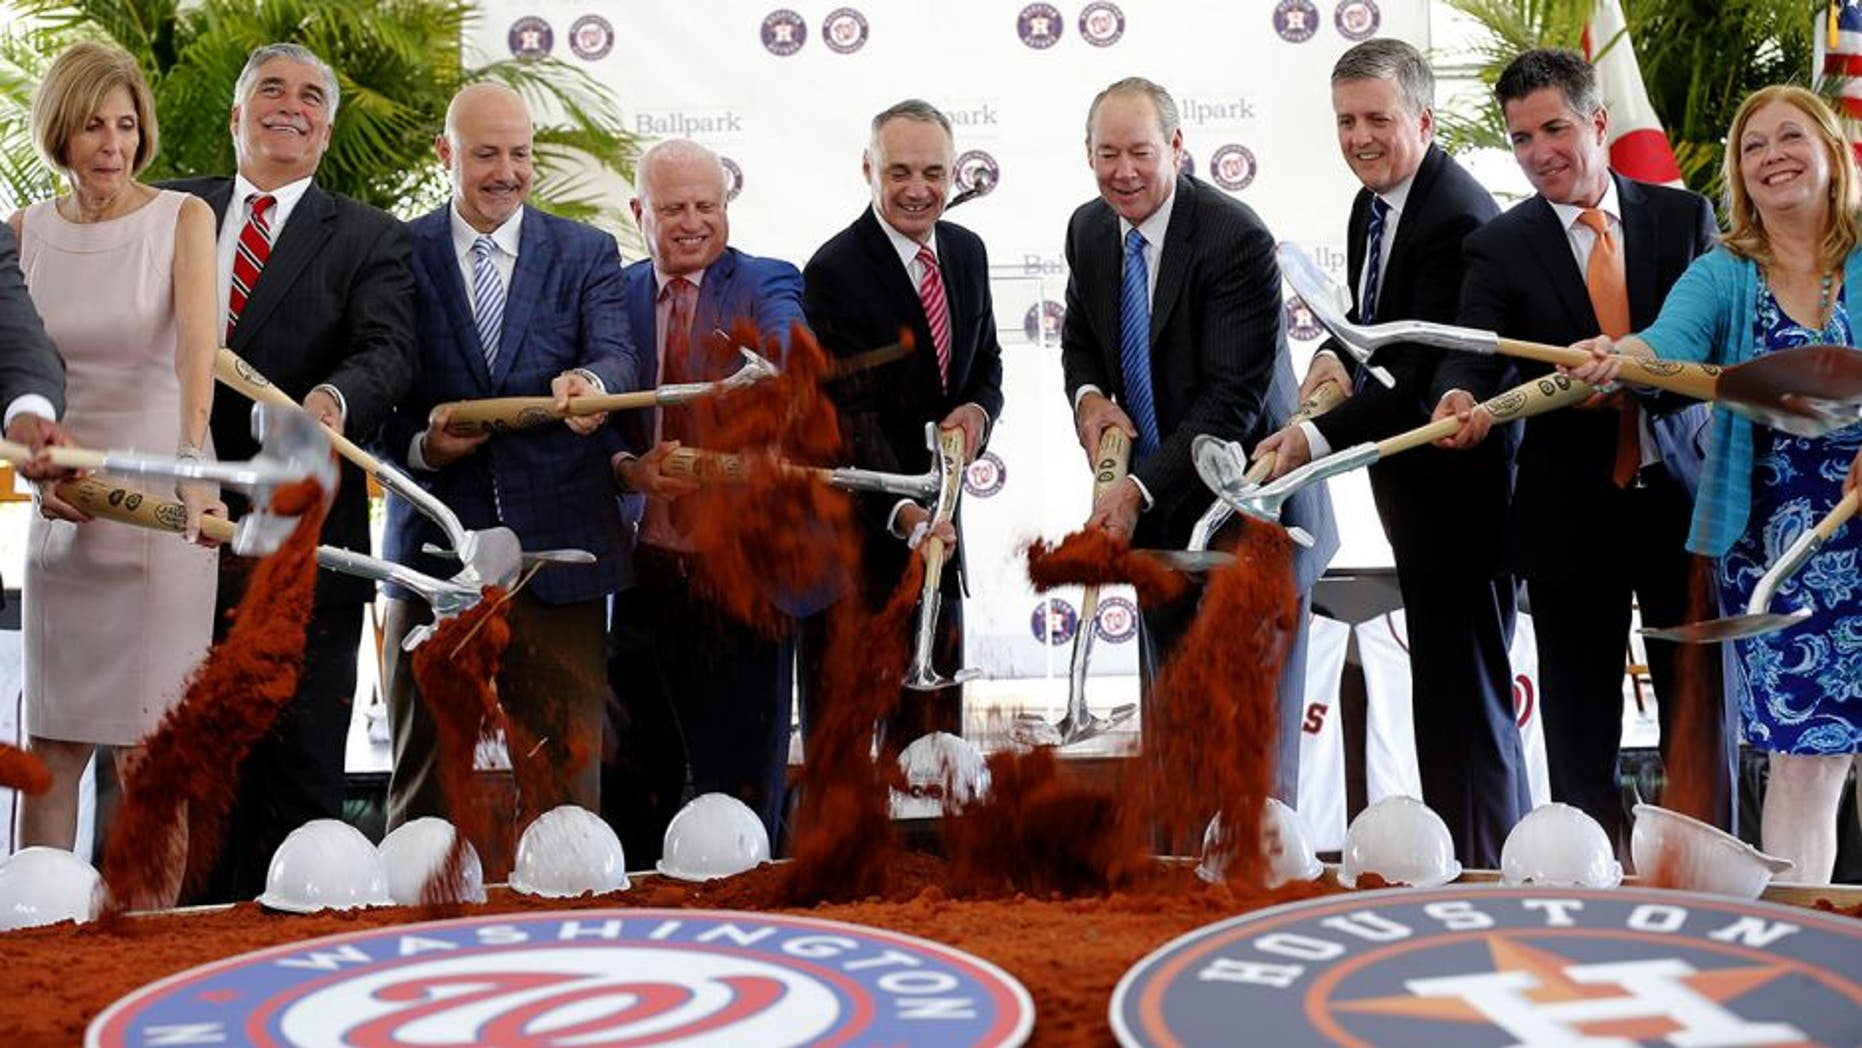 Major League Baseball commissioner Rob Manfred, center left, is flanked by Houston Astros owner Jim Crane, right center, and Washington Nationals owner Mark Lerner, left center, along with other dignitaries during a groundbreaking ceremony for the future home of the of Houston Astros and the Washington Nationals spring training facility on Monday, Nov. 9, 2015, in West Palm Beach, Fla. (AP Photo/Steve Mitchell)